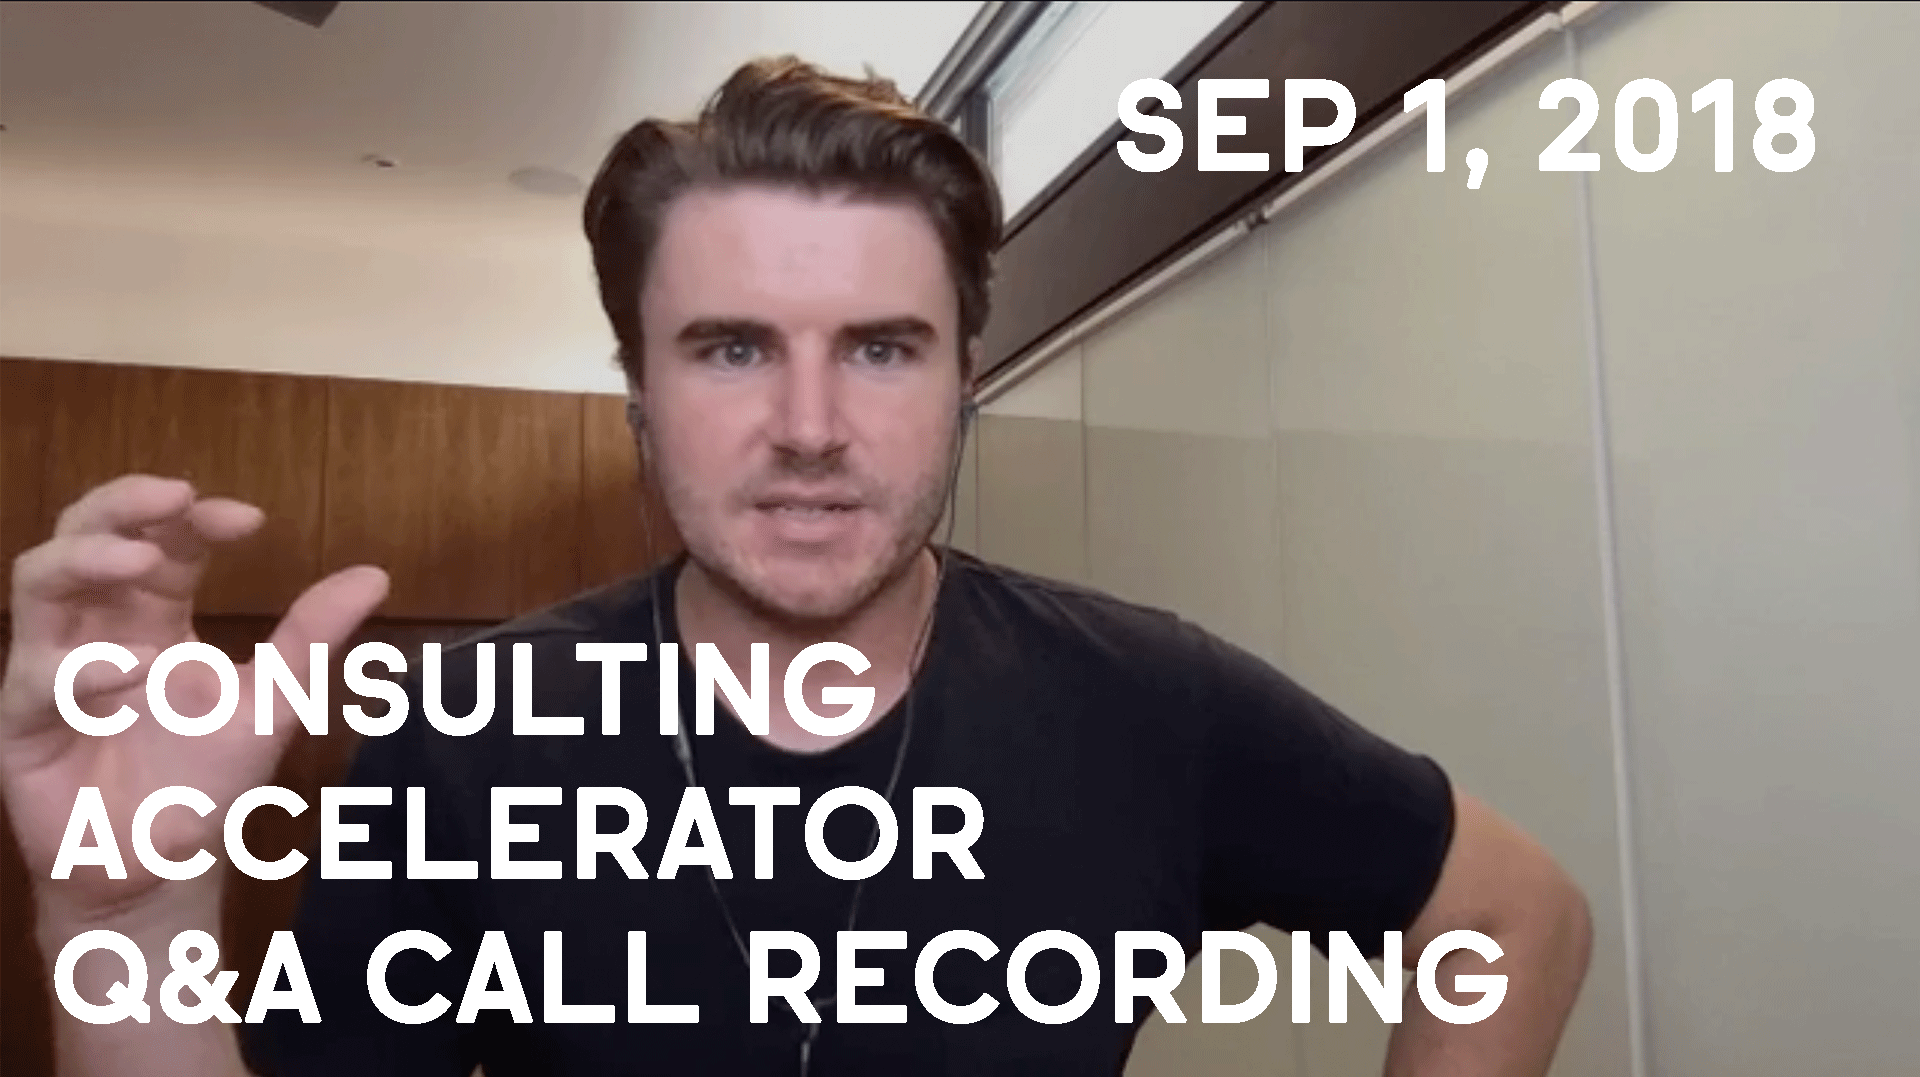 Consulting Accelerator Livestream Q&A, September 1st, 2018